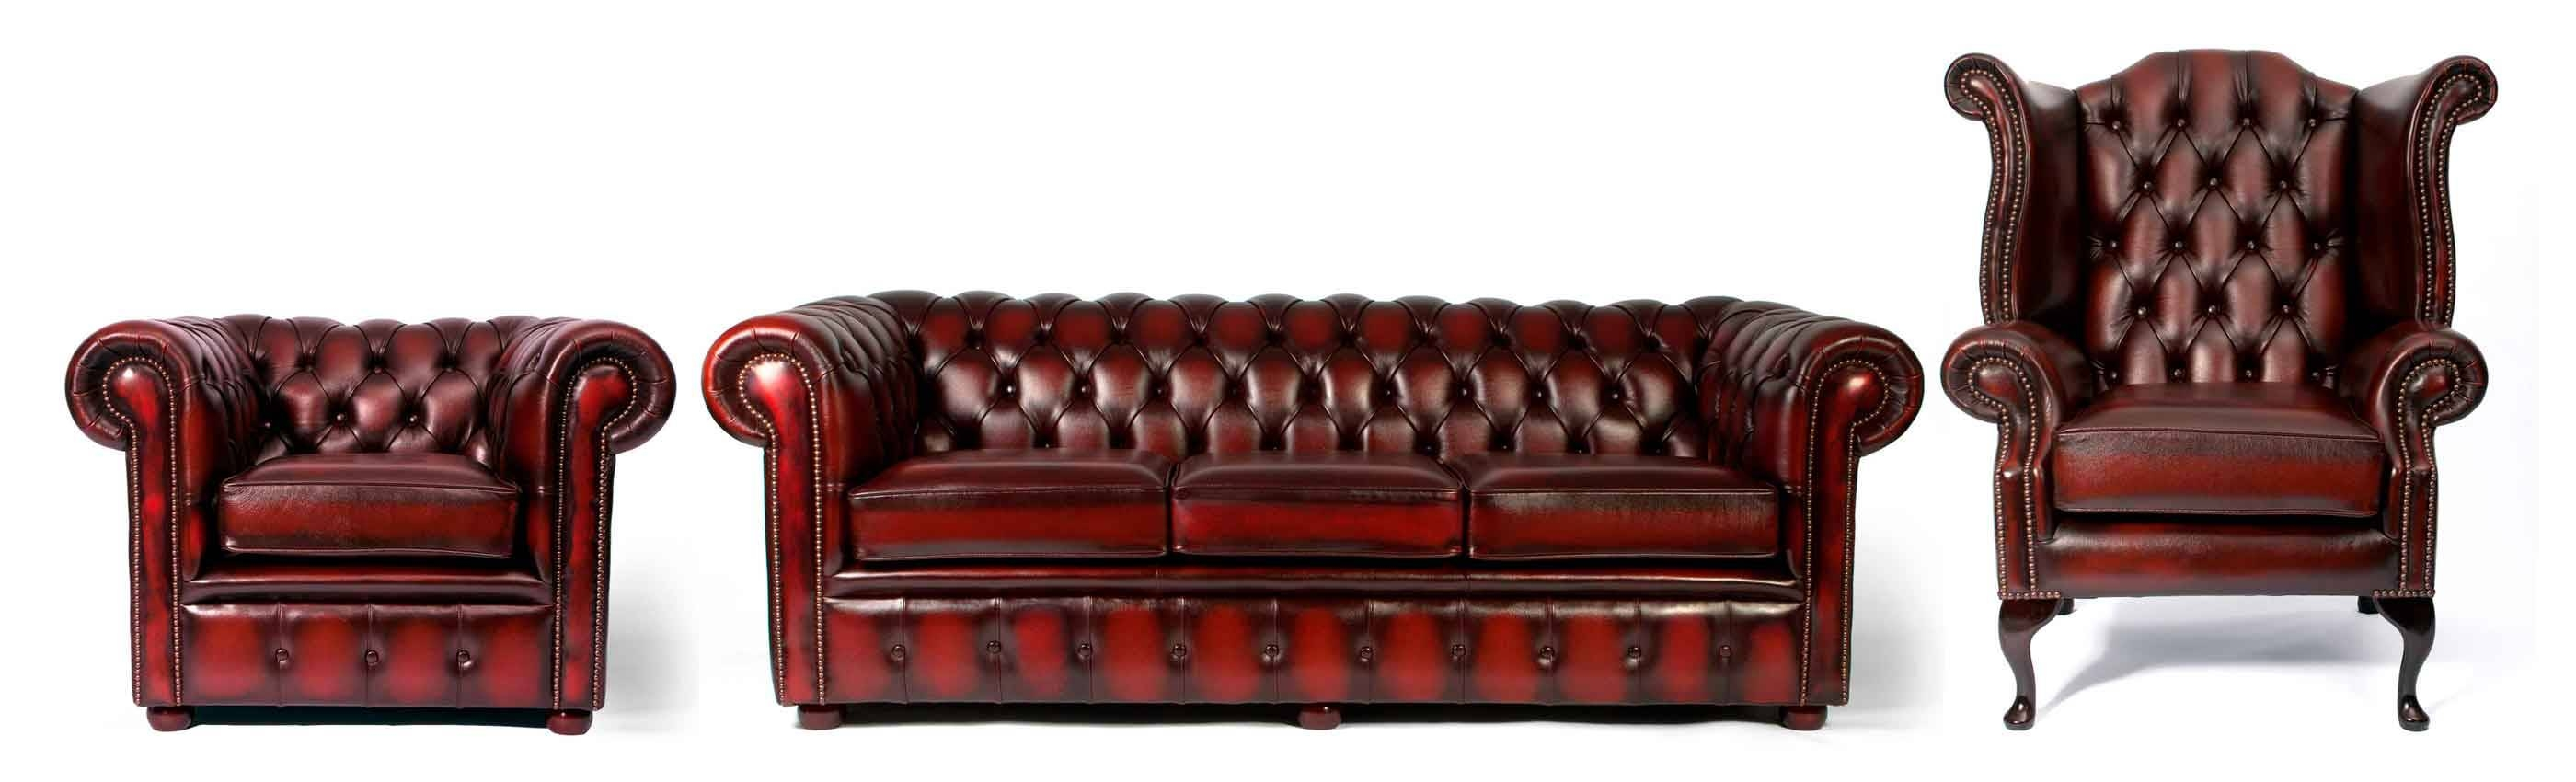 Furniture: Enchanting Chesterfield Couch For Living Room Furniture inside Red Sofas And Chairs (Image 8 of 30)